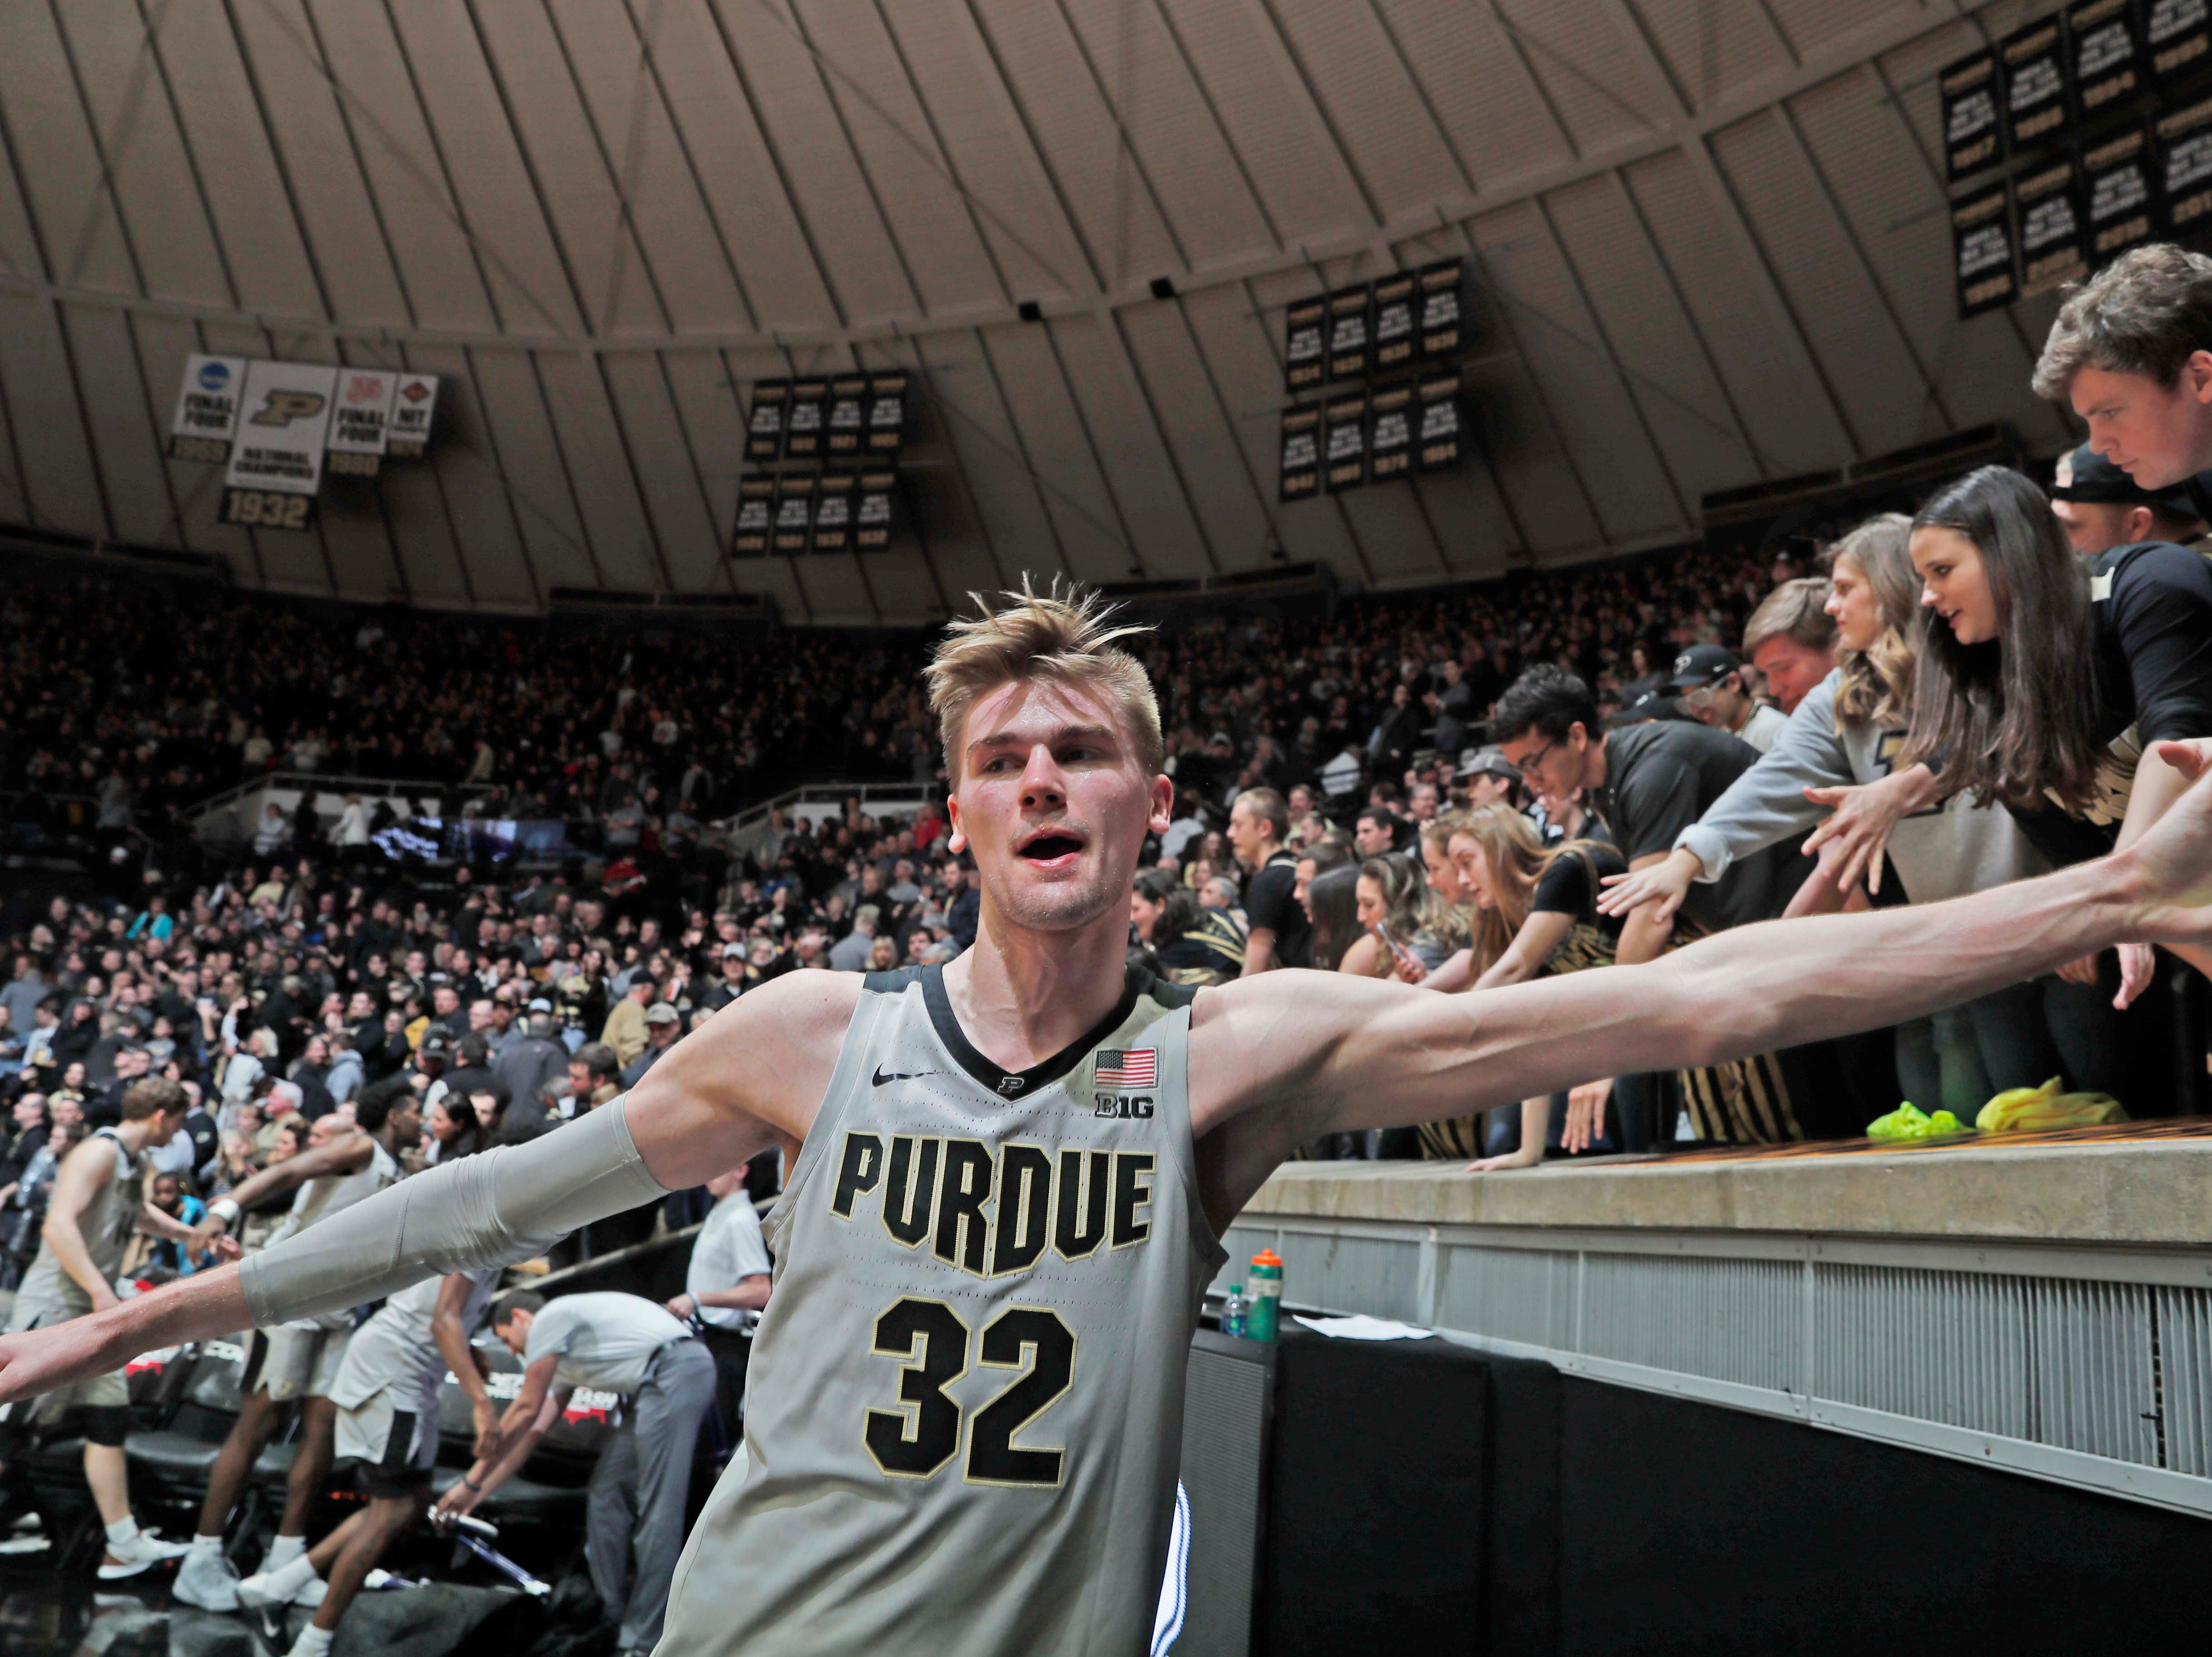 Purdue Boilermakers center Matt Haarms (32) high fives the fans after the victory against the Penn State Nittany Lions at Mackey Arena.